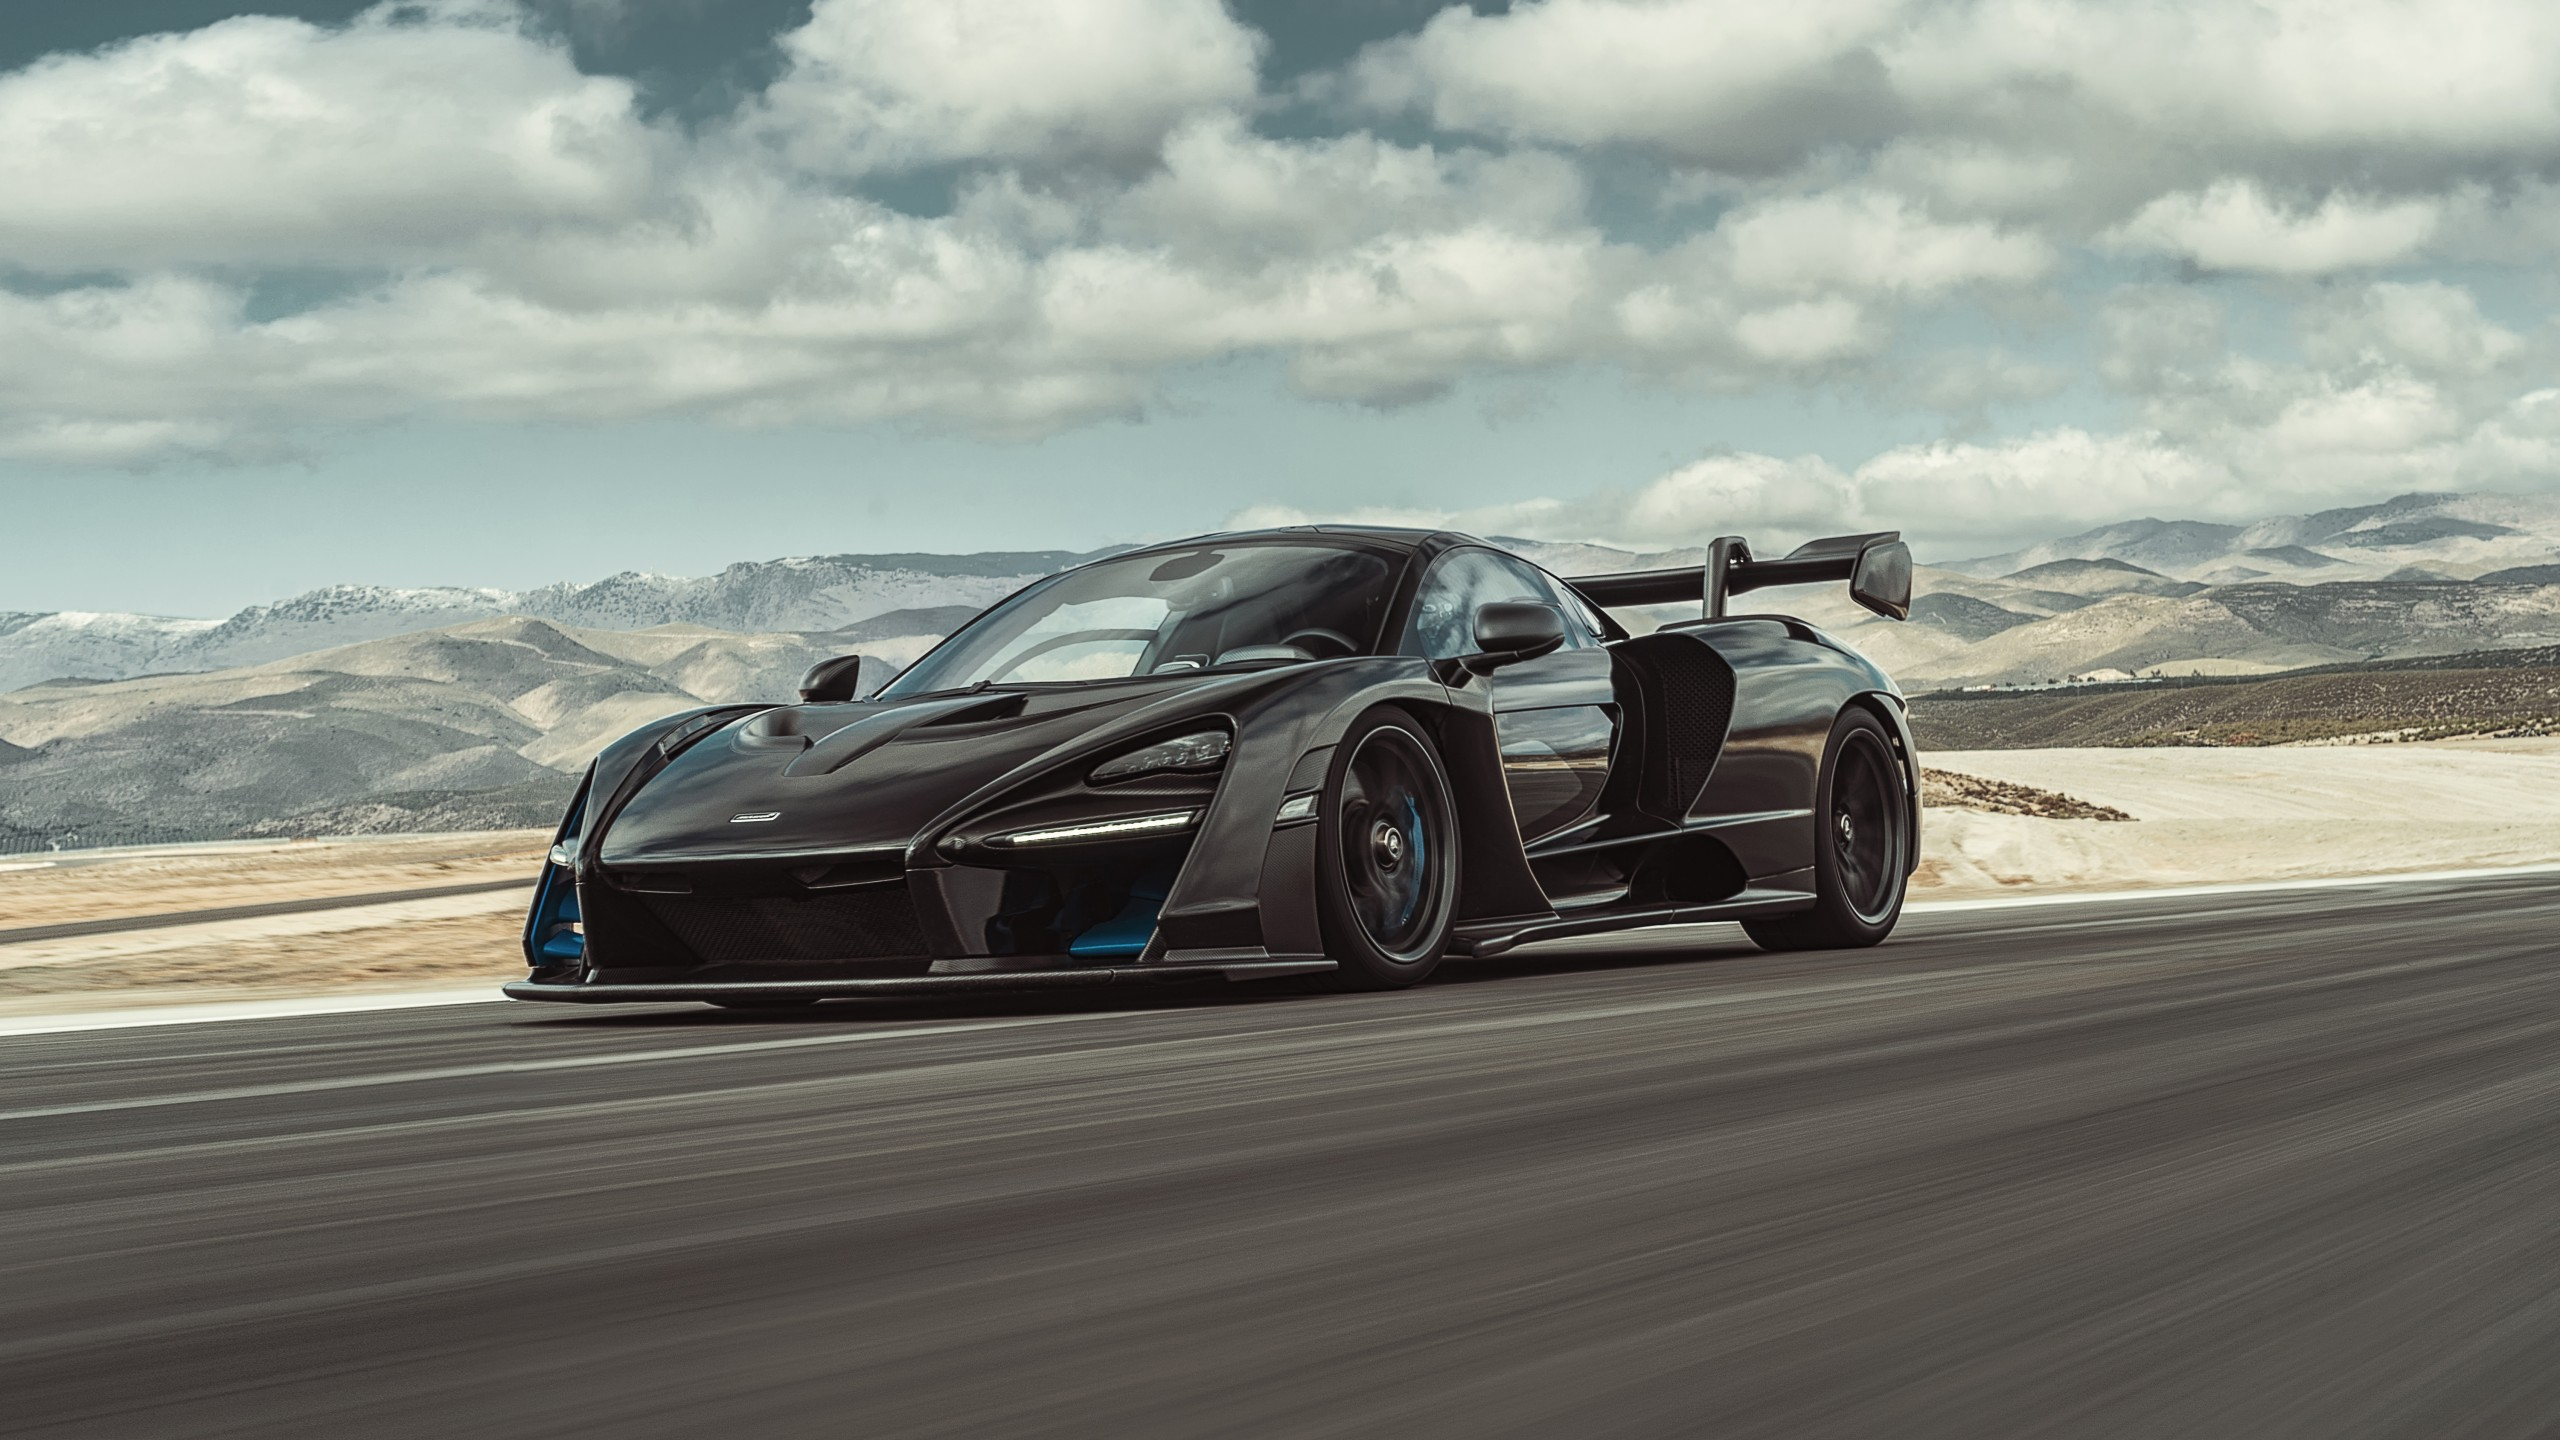 Bmw M Wallpaper Iphone X 2019 Mclaren Senna 5k Wallpaper Hd Car Wallpapers Id 9868